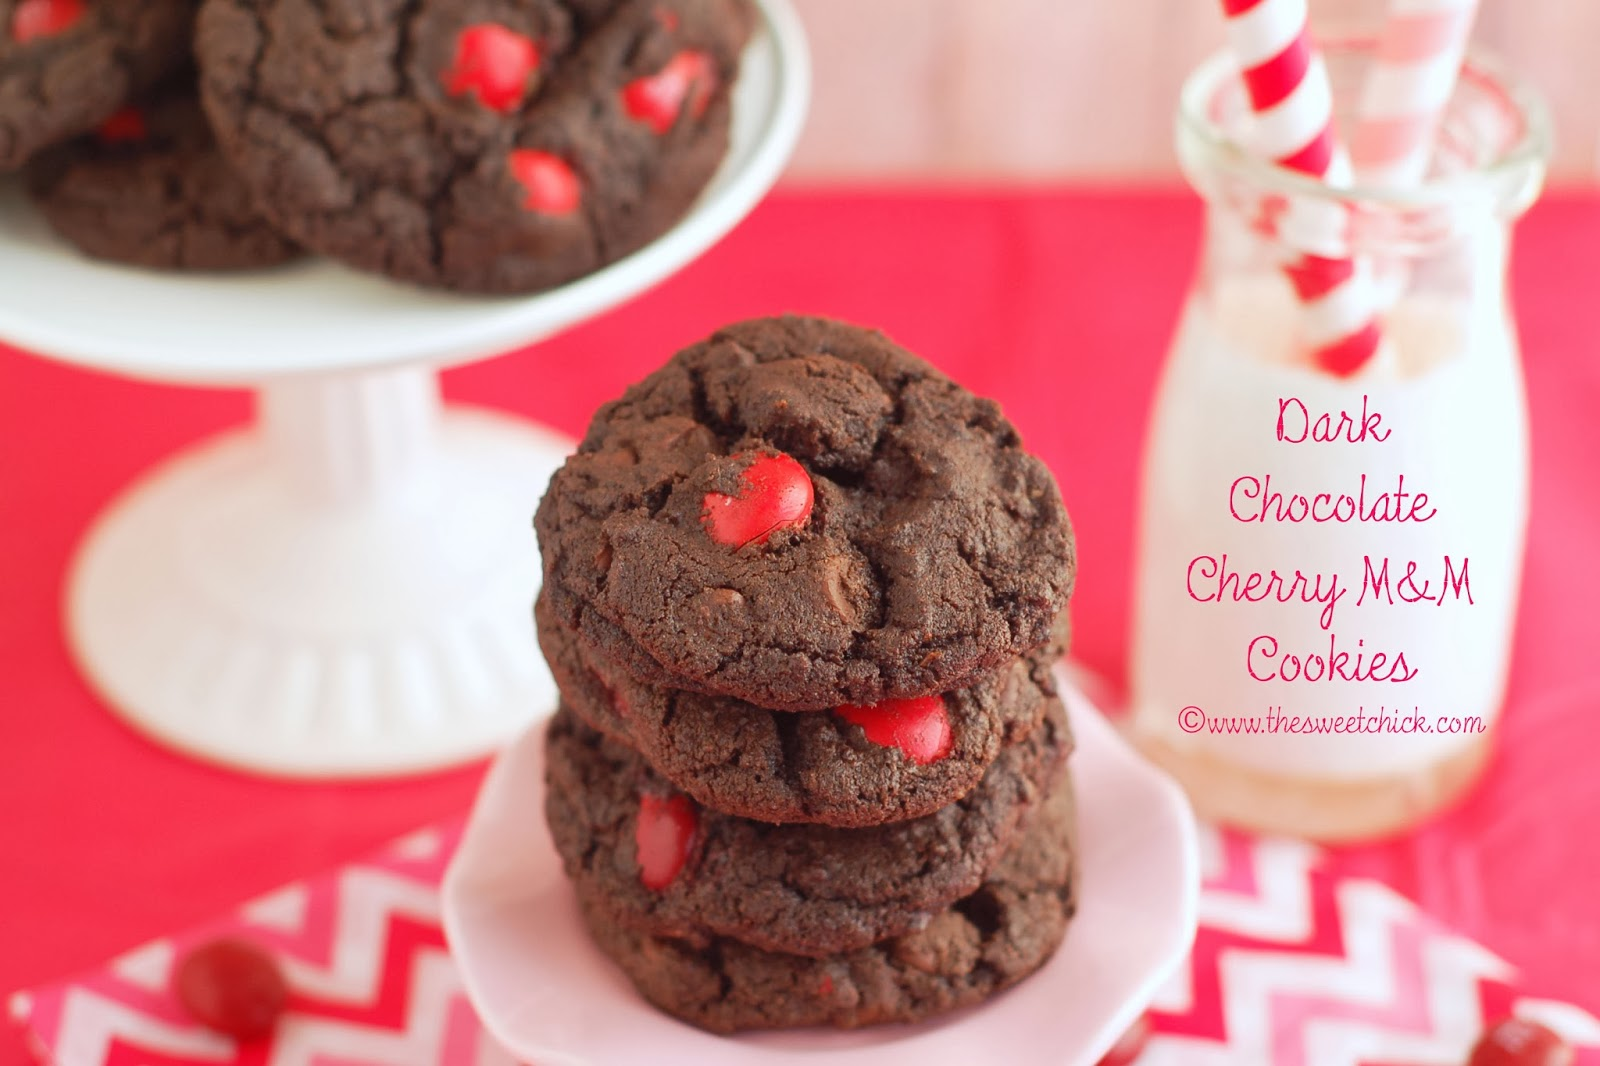 Dark Chocolate Cherry M&M Cookies by The Sweet Chick